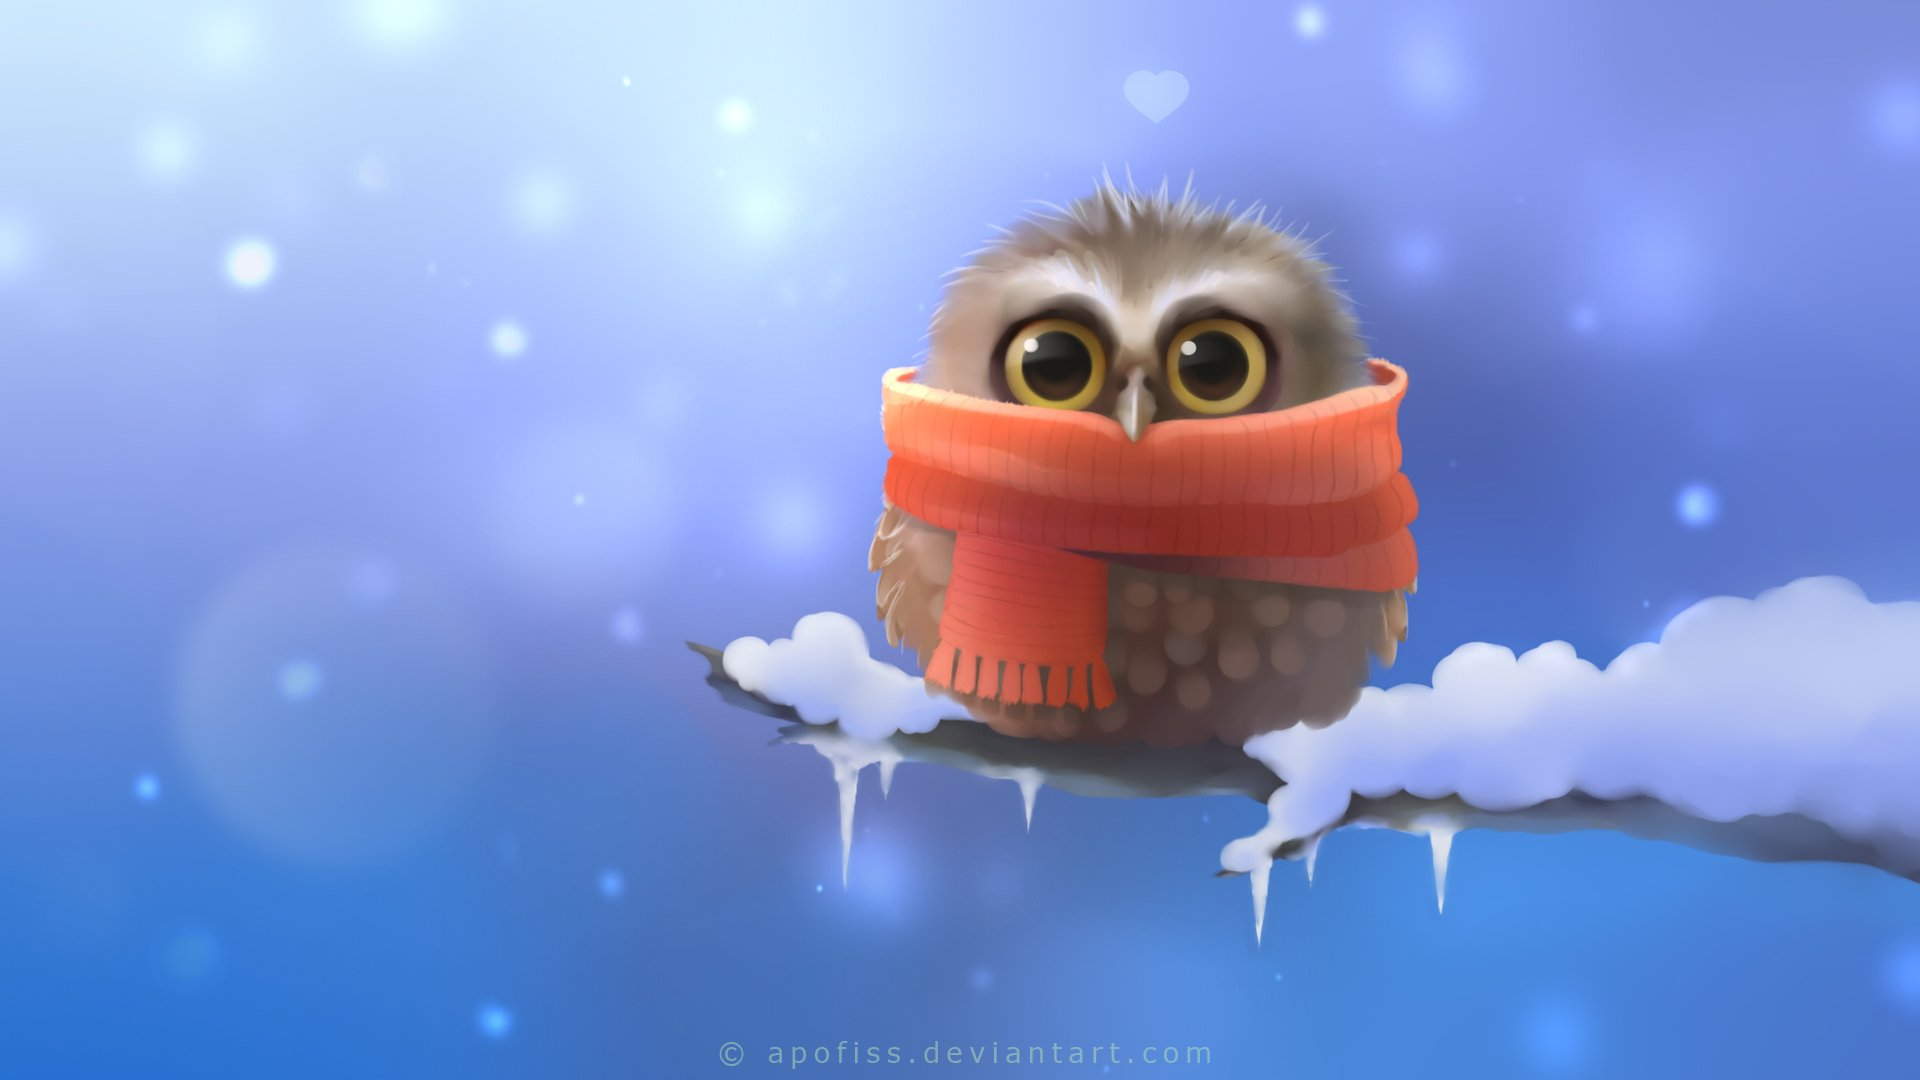 Cute Owl Wallpapers HD Wallpapers 1920x1080